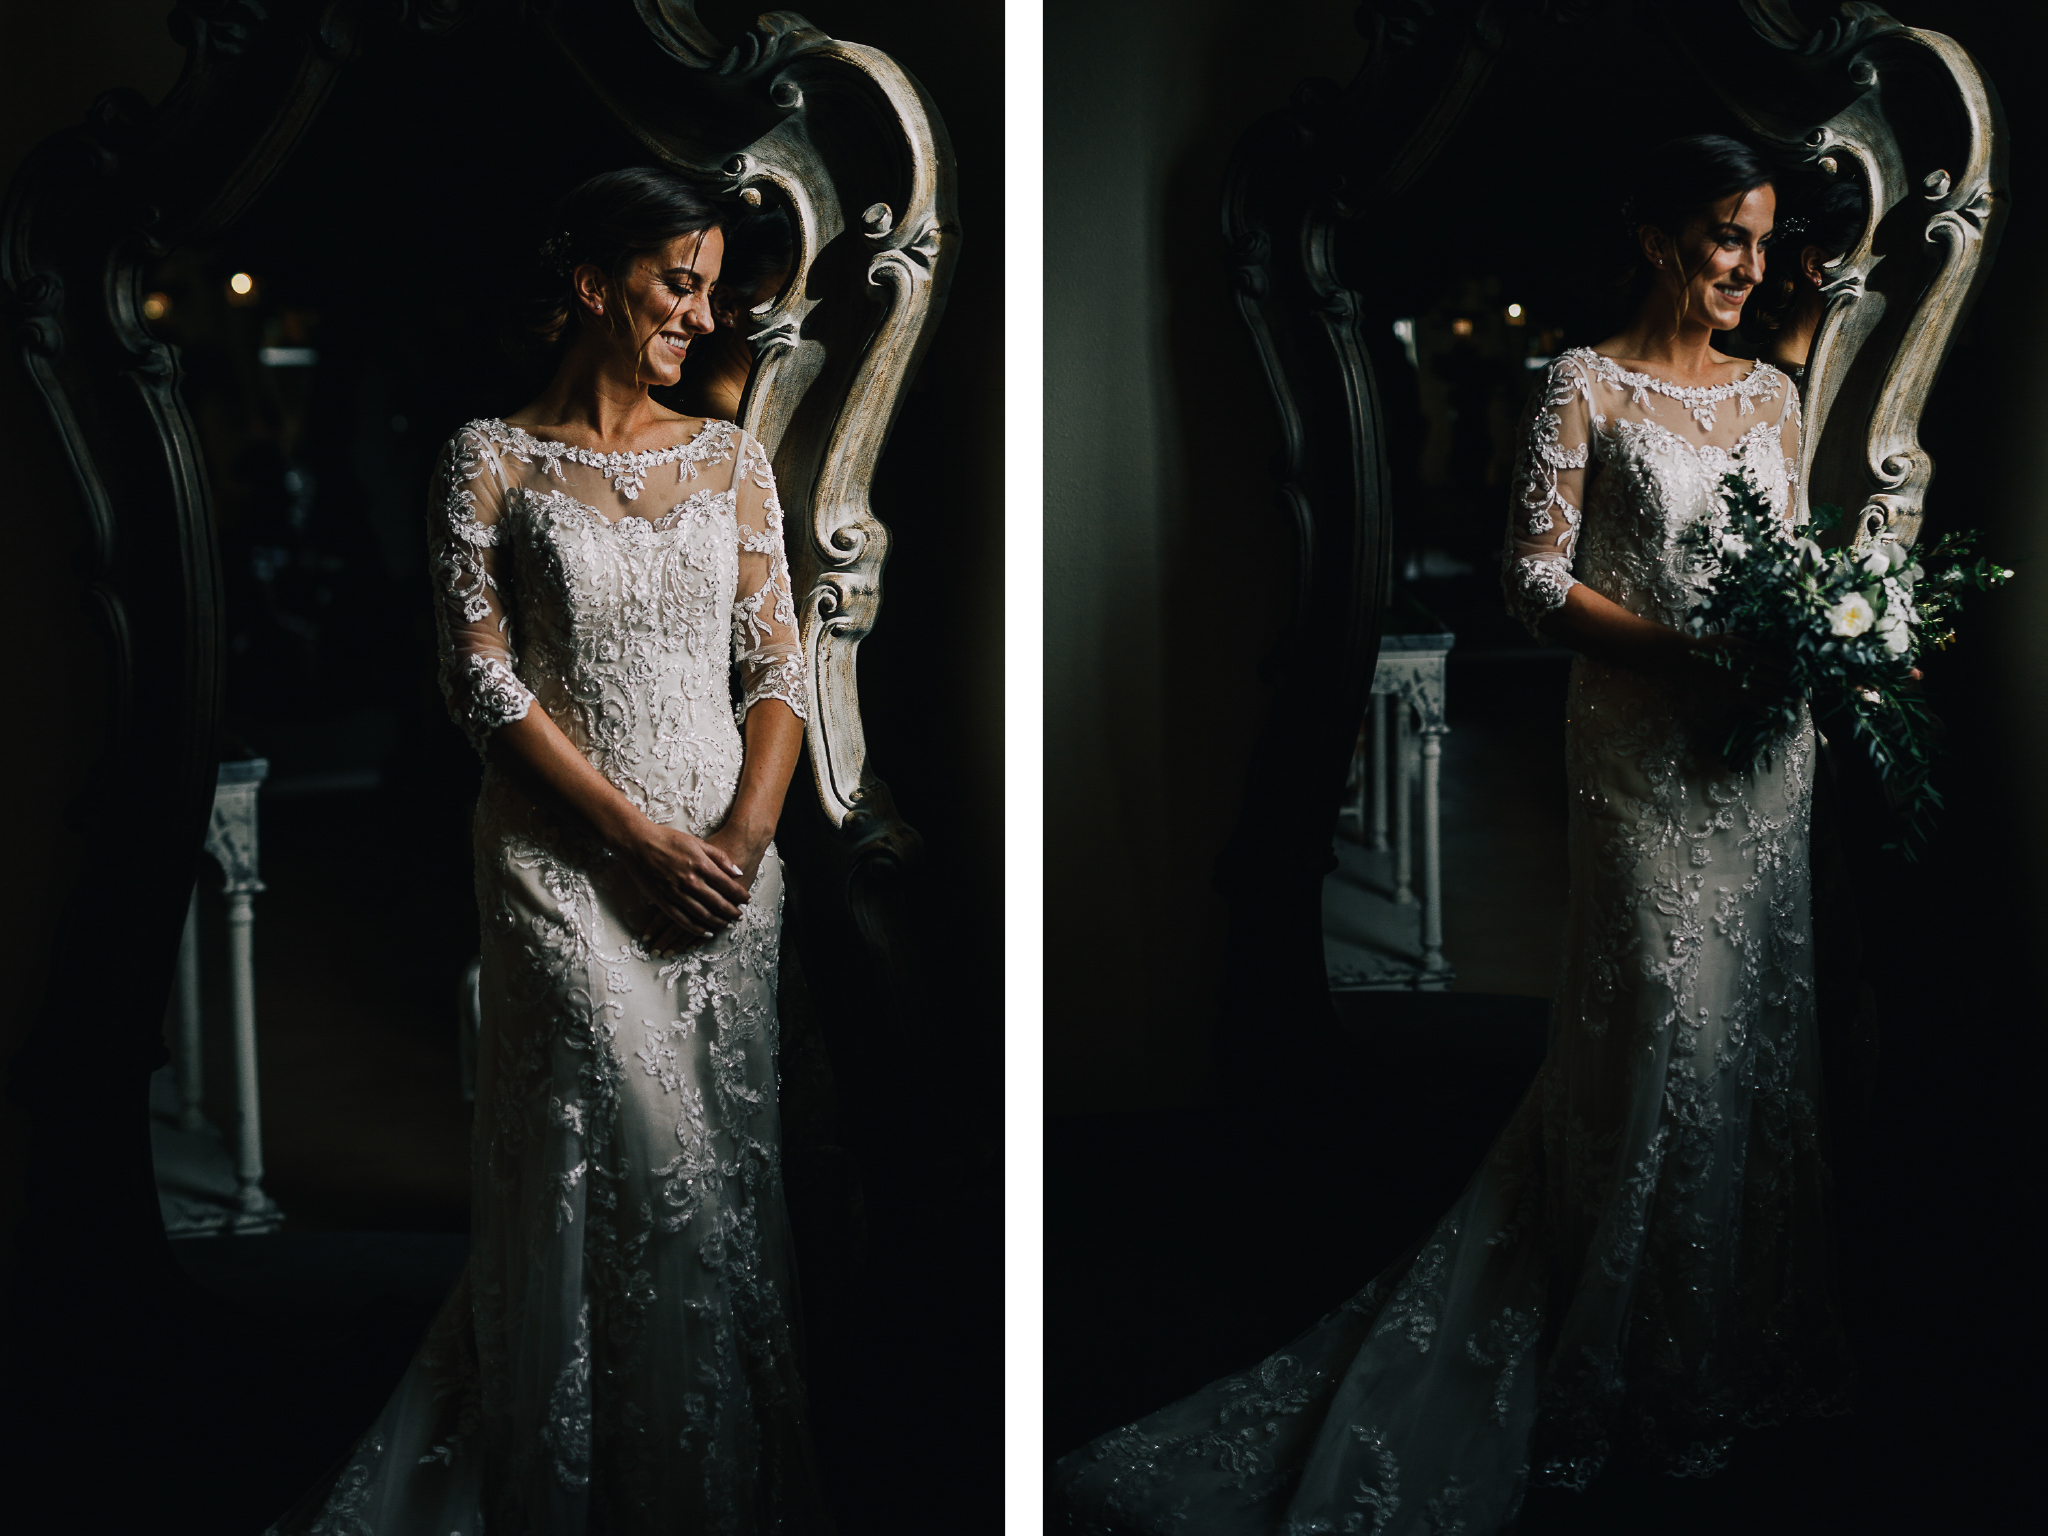 san diego wedding   photographer | collage of bride in weddding dress smiling while holding   bouquet of flowers standing in front of mirror